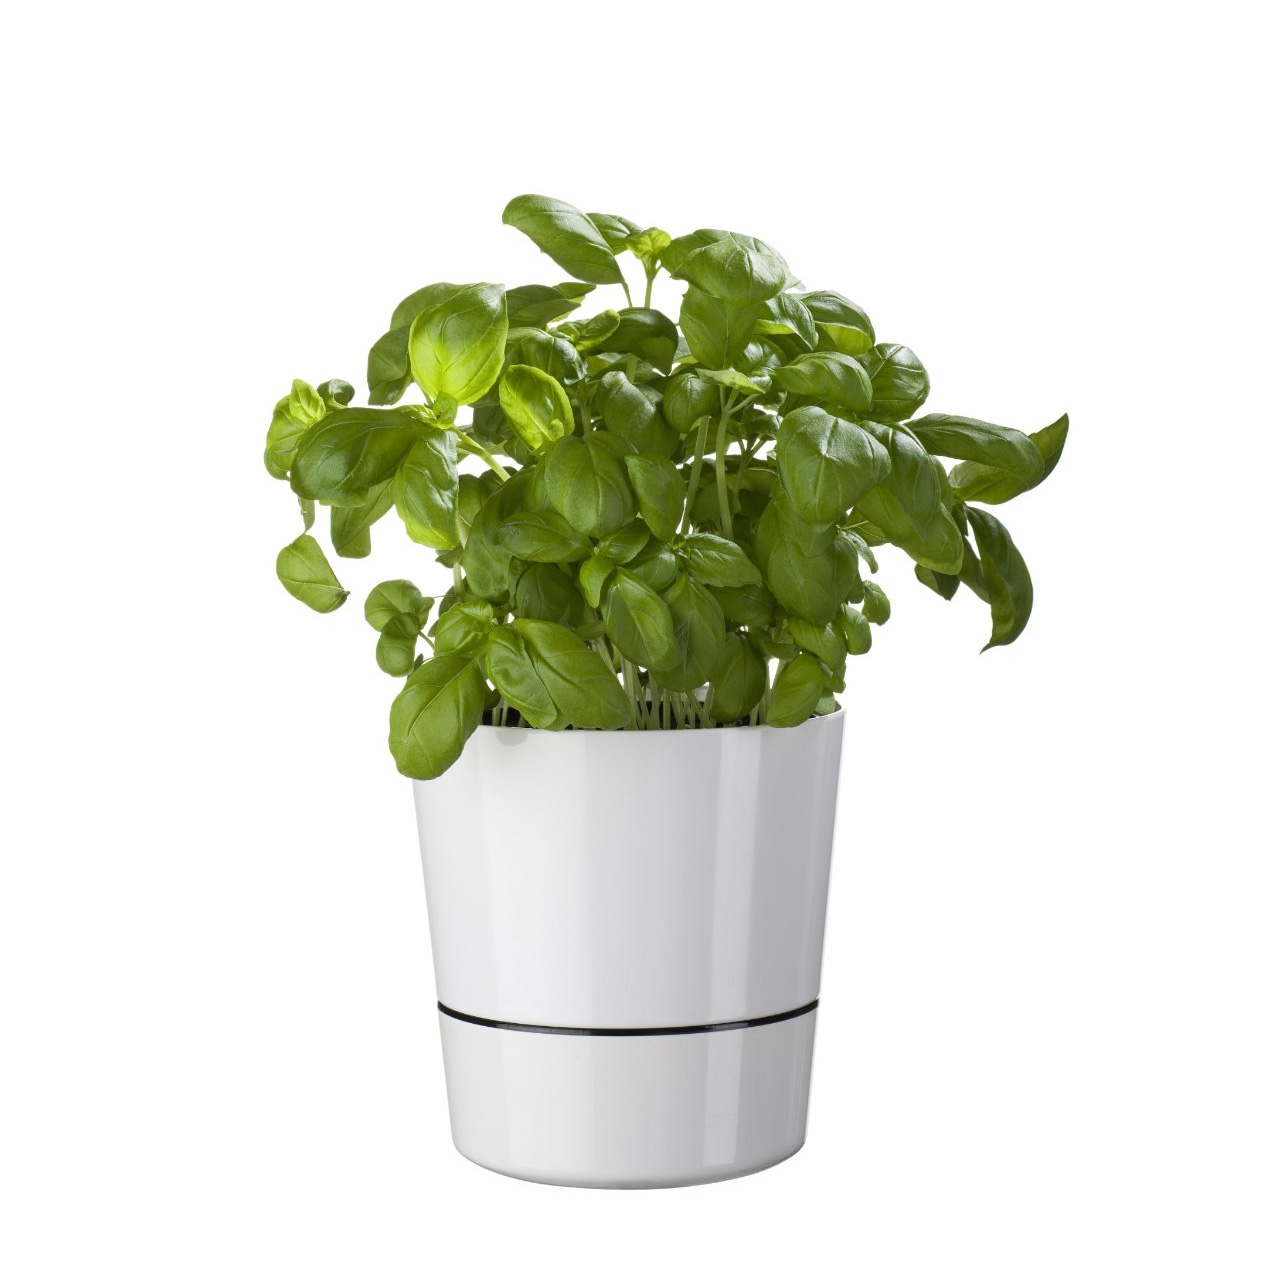 Image of Herb Hydro Pot Blumentöpfe - 2er Set